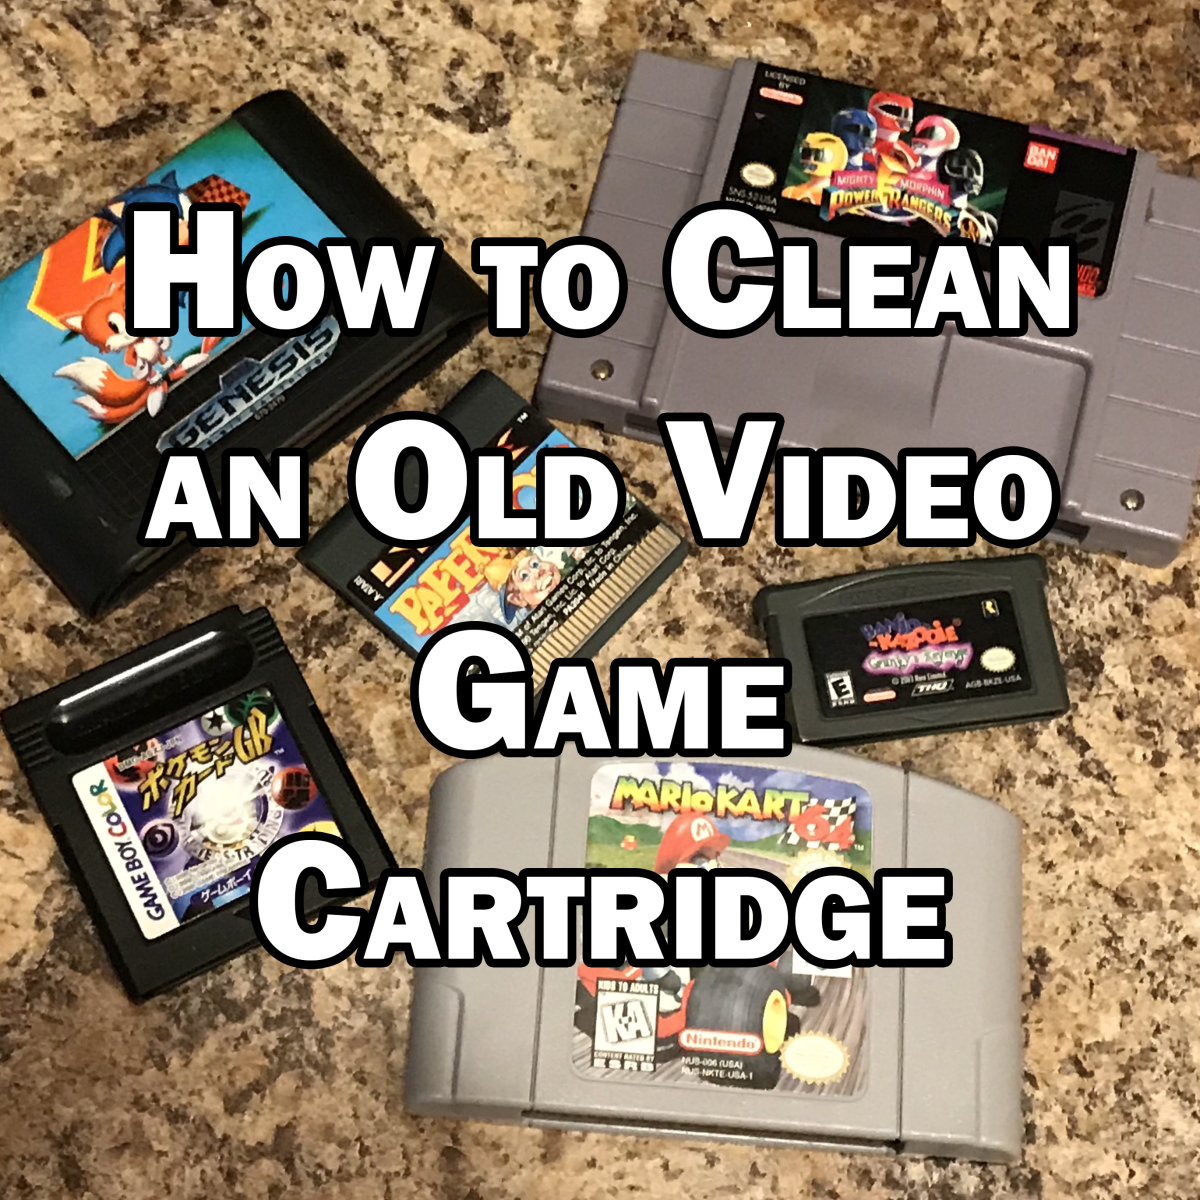 How to Clean an Old Video Game Cartridge